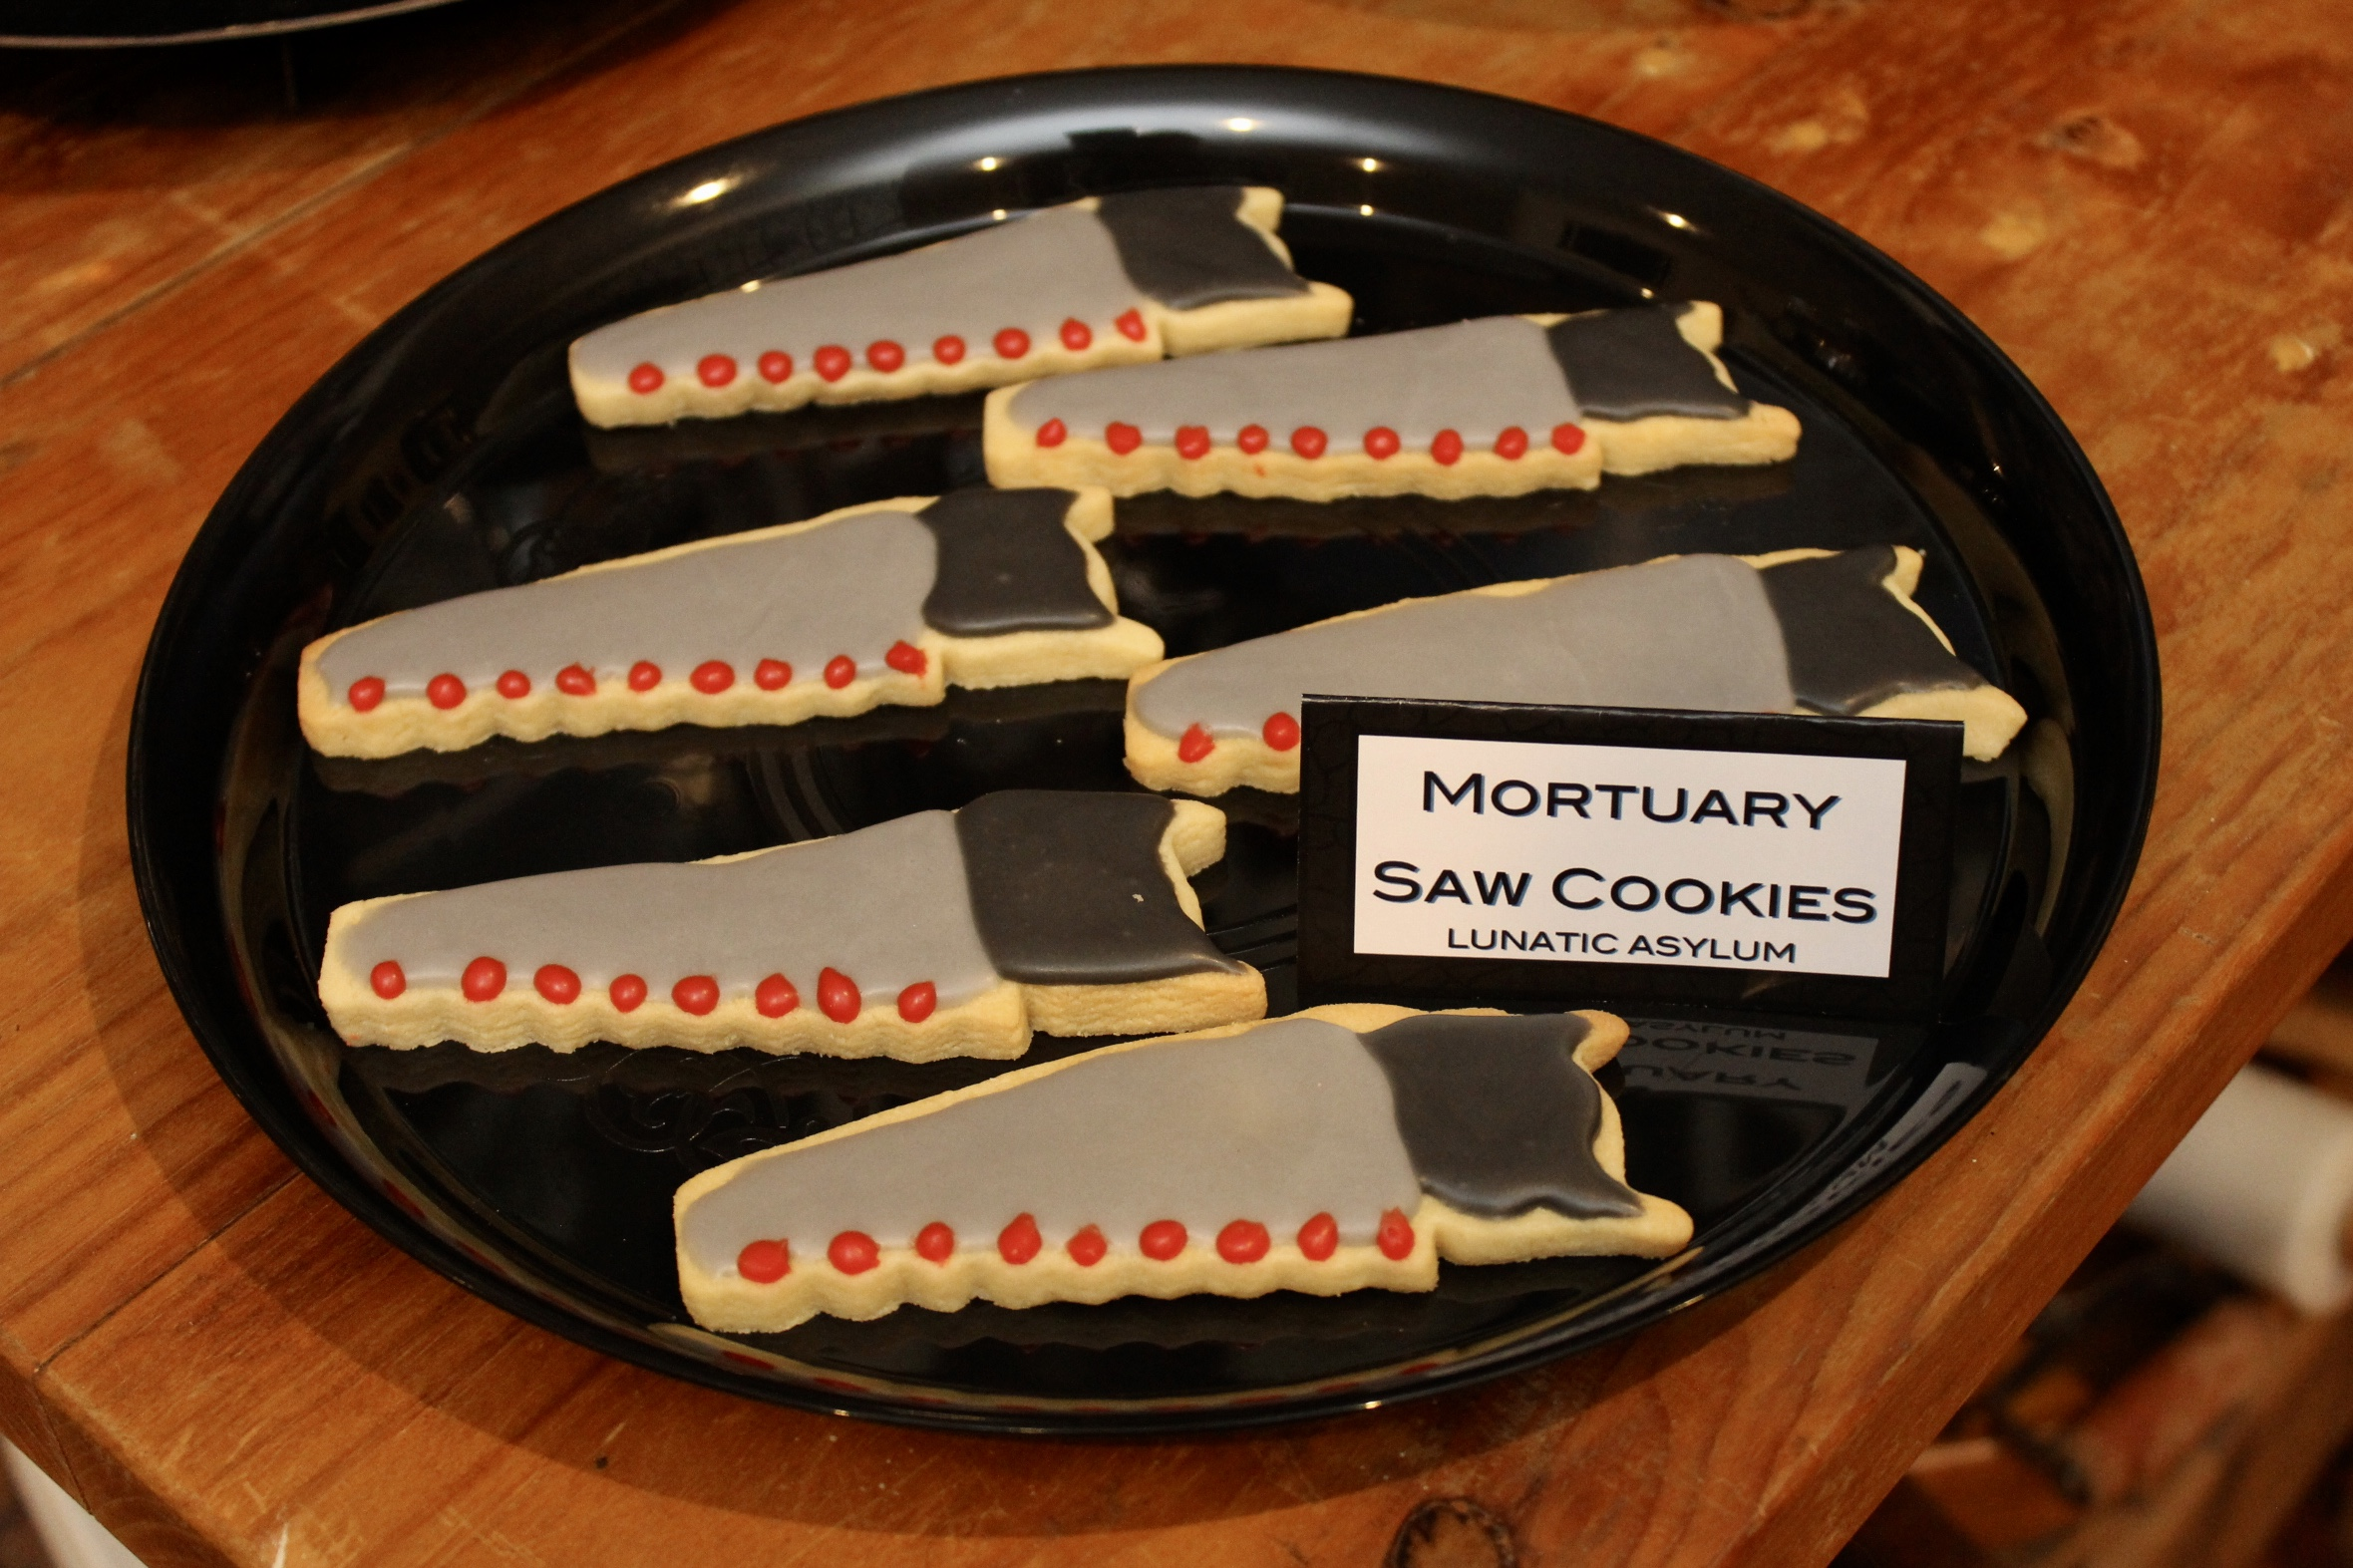 Halloween Asylum Cookies - Mortuary Saw